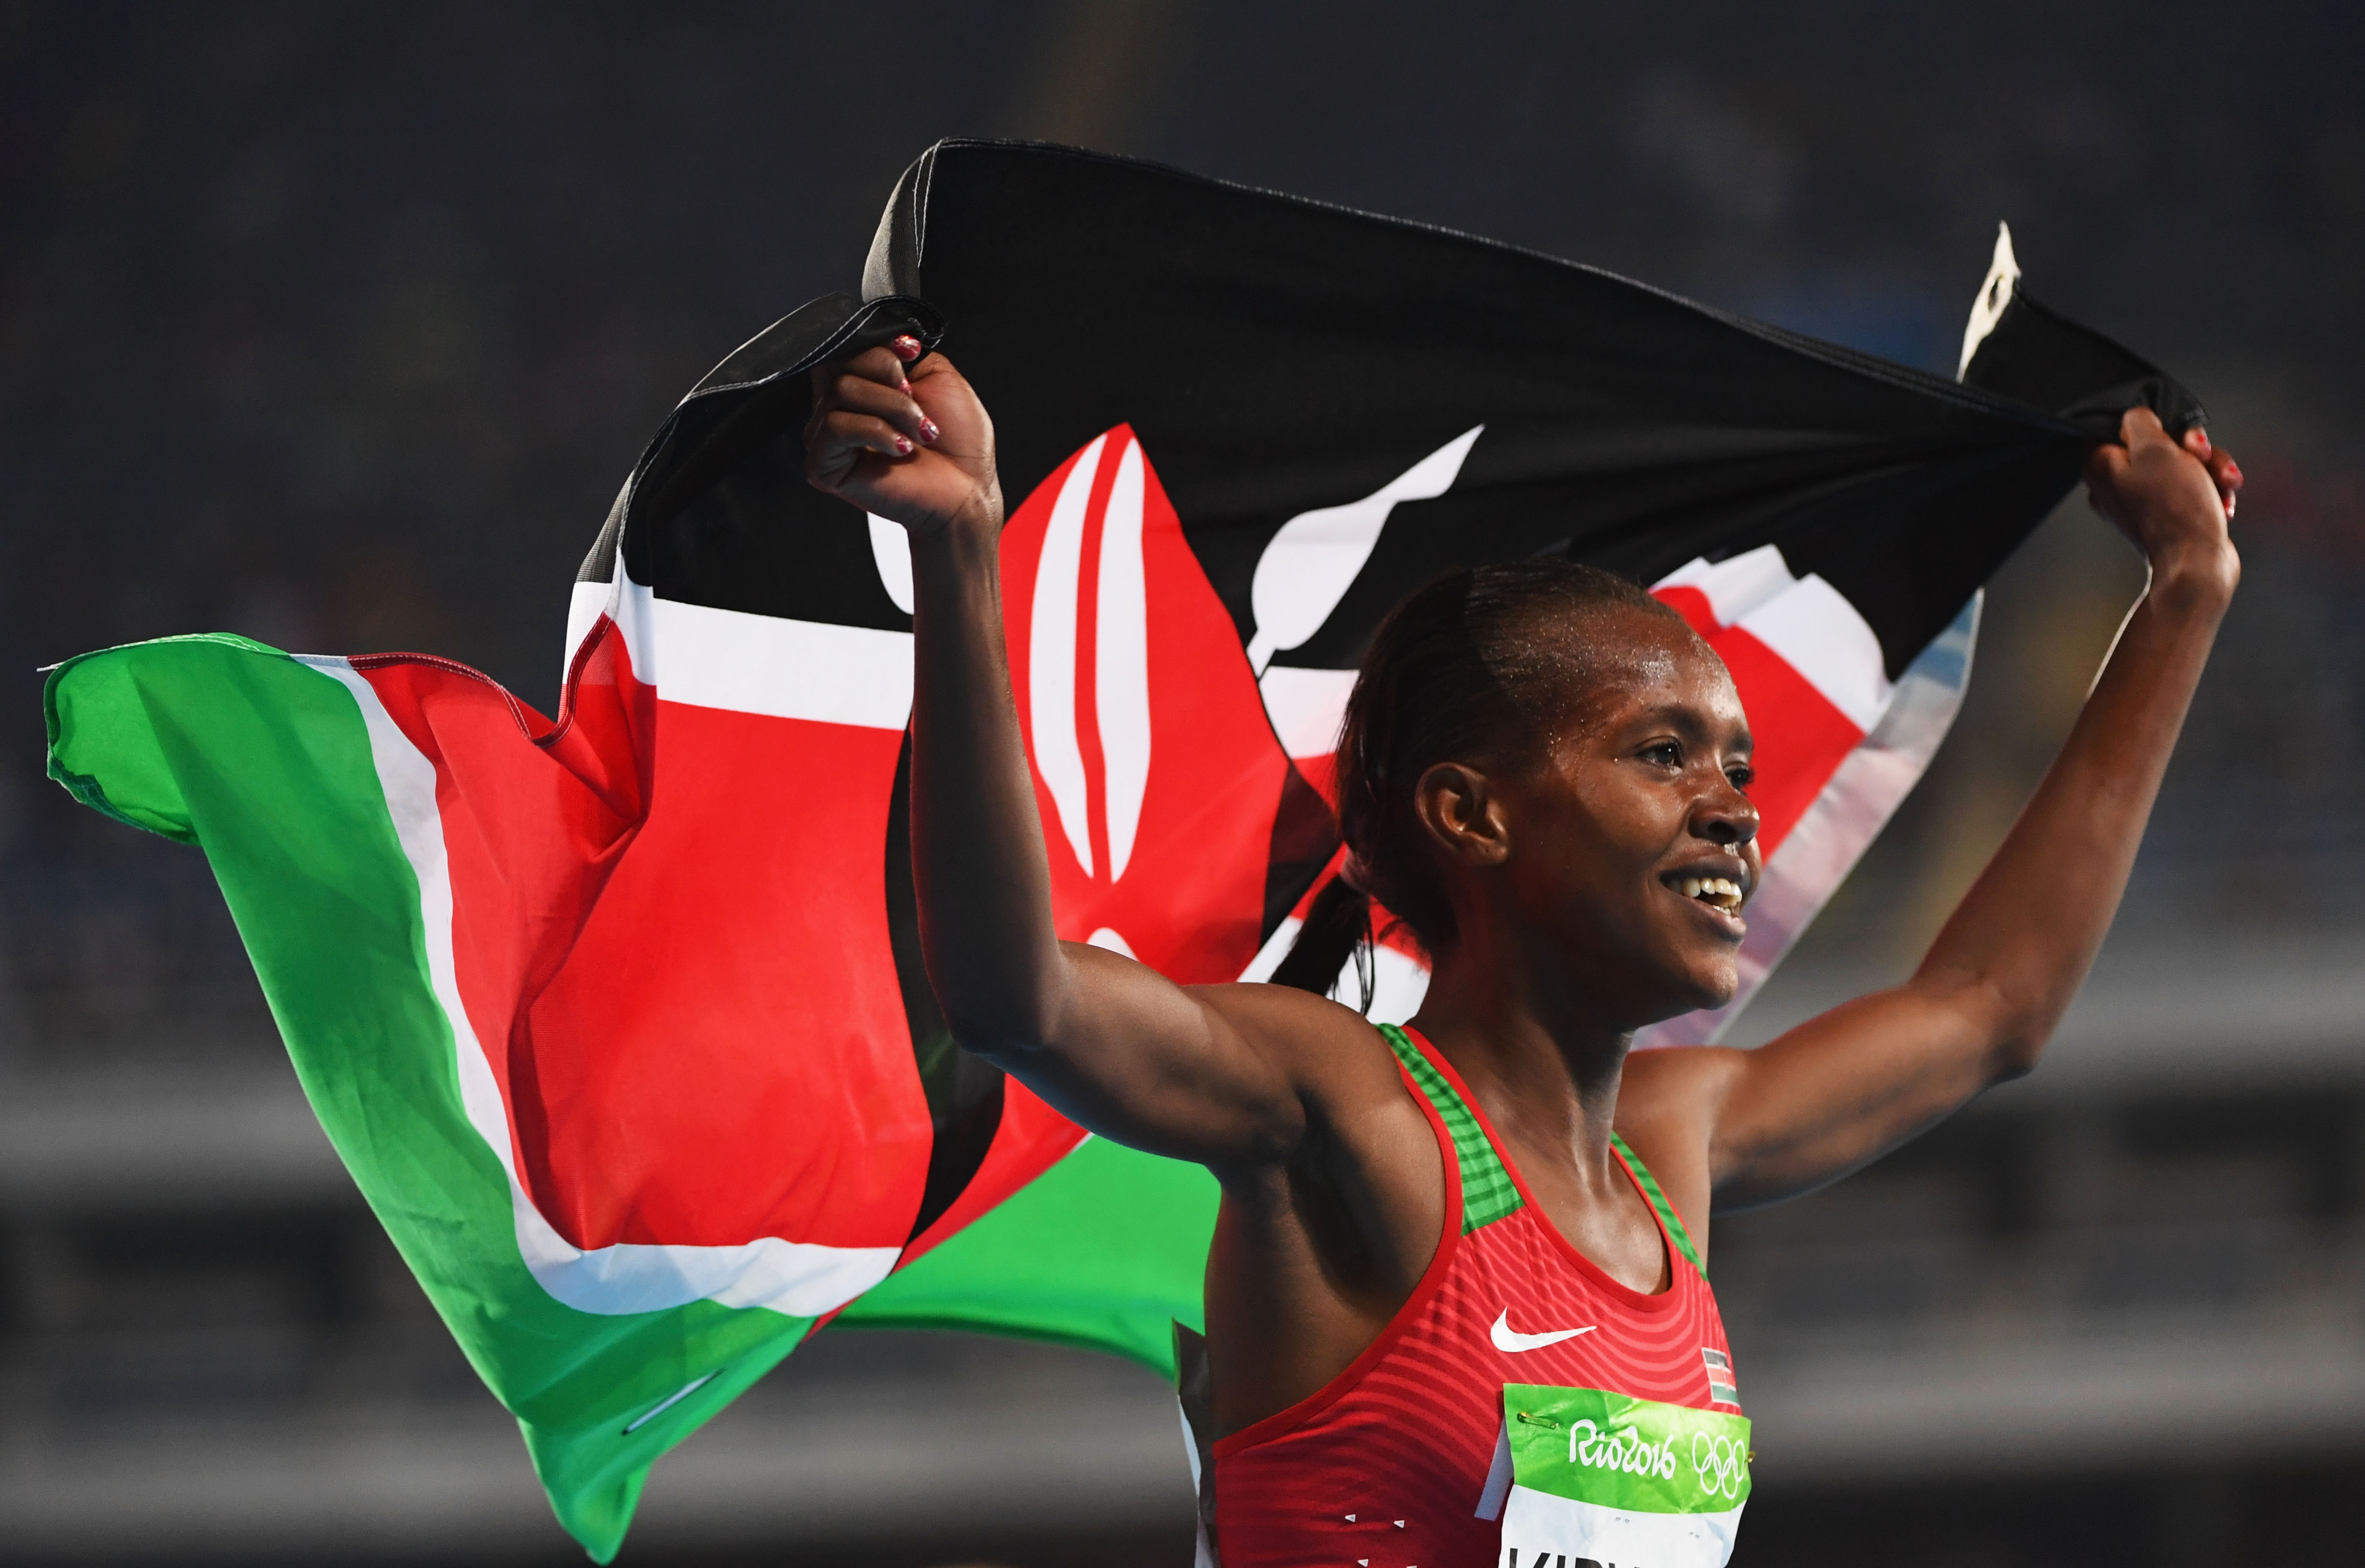 Faith Chepngetich Kipyegon of Kenya celebrates after winning the gold medal in the Women's 1500m Final on Day 11 of the Rio 2016 Olympic Games on Aug. 16, 2016.